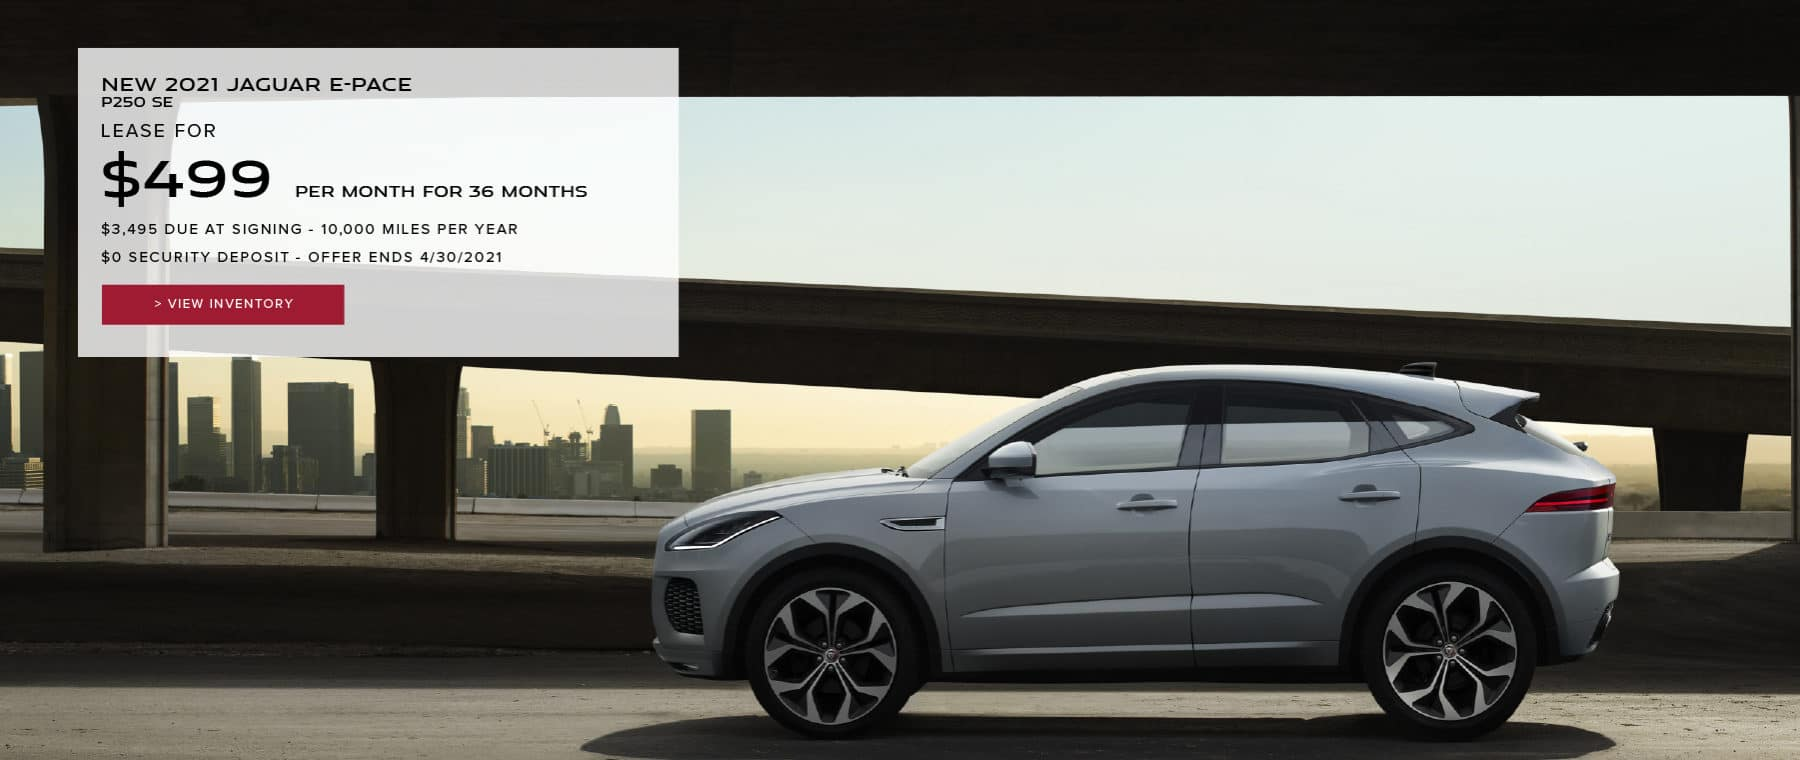 NEW 2021 JAGUAR E-PACE P250 SE. $499 PER MONTH. 36 MONTH LEASE TERM. $3,495 CASH DUE AT SIGNING. $0 SECURITY DEPOSIT. 10,000 MILES PER YEAR. EXCLUDES RETAILER FEES, TAXES, TITLE AND REGISTRATION FEES, PROCESSING FEE AND ANY EMISSION TESTING CHARGE. OFFER ENDS 4/30/2021. VIEW INVENTORY. WHITE JAGUAR E-PACE DRIVING THROUGH CITY.